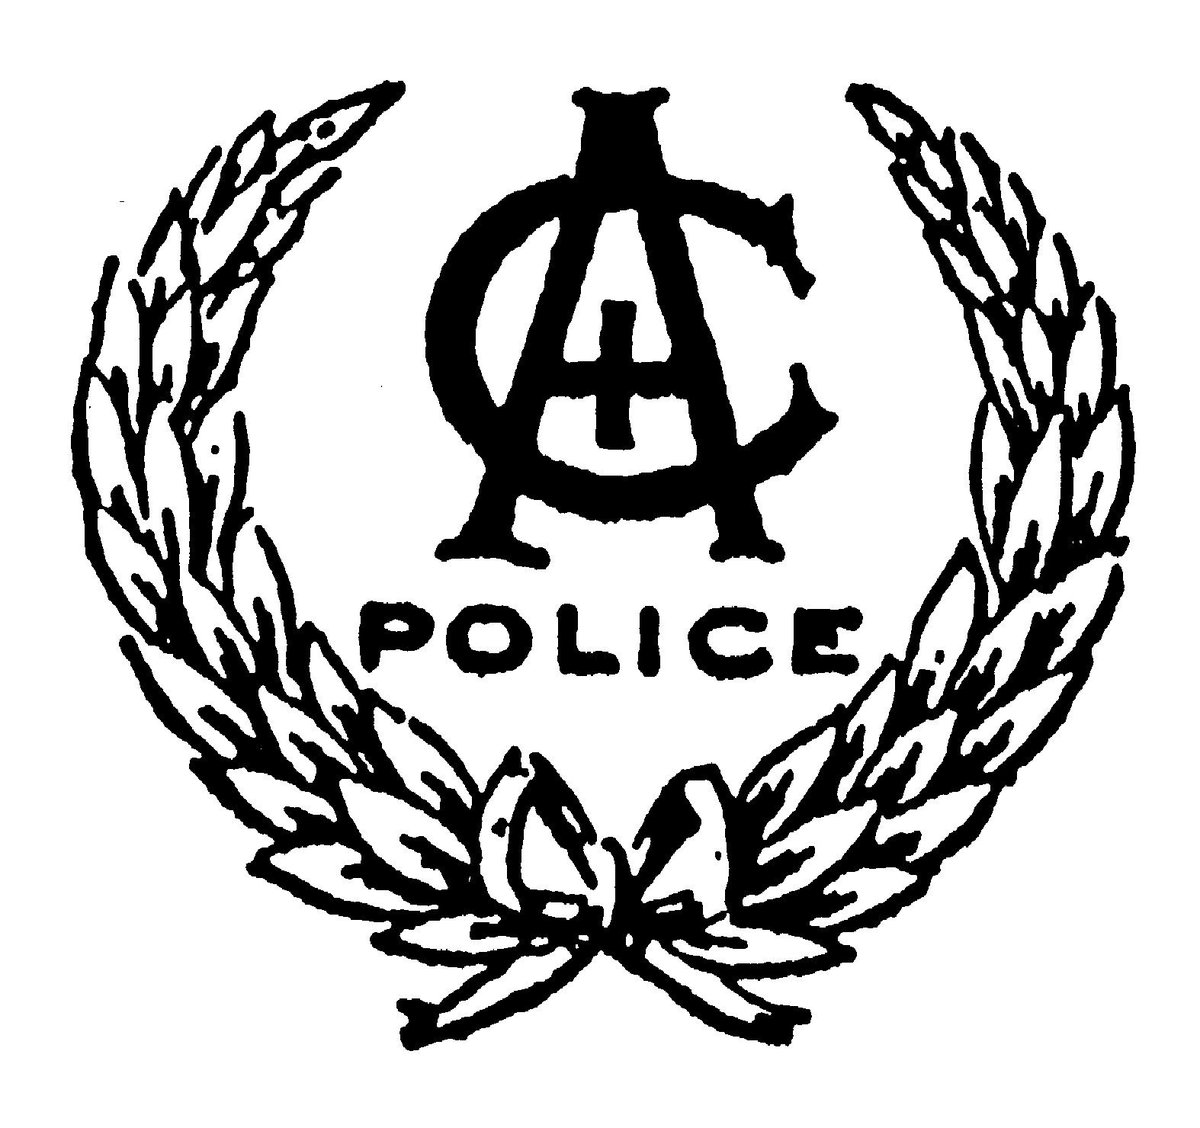 The Iacp On Twitter Iacps First Conference In Chicago In 1893 Had